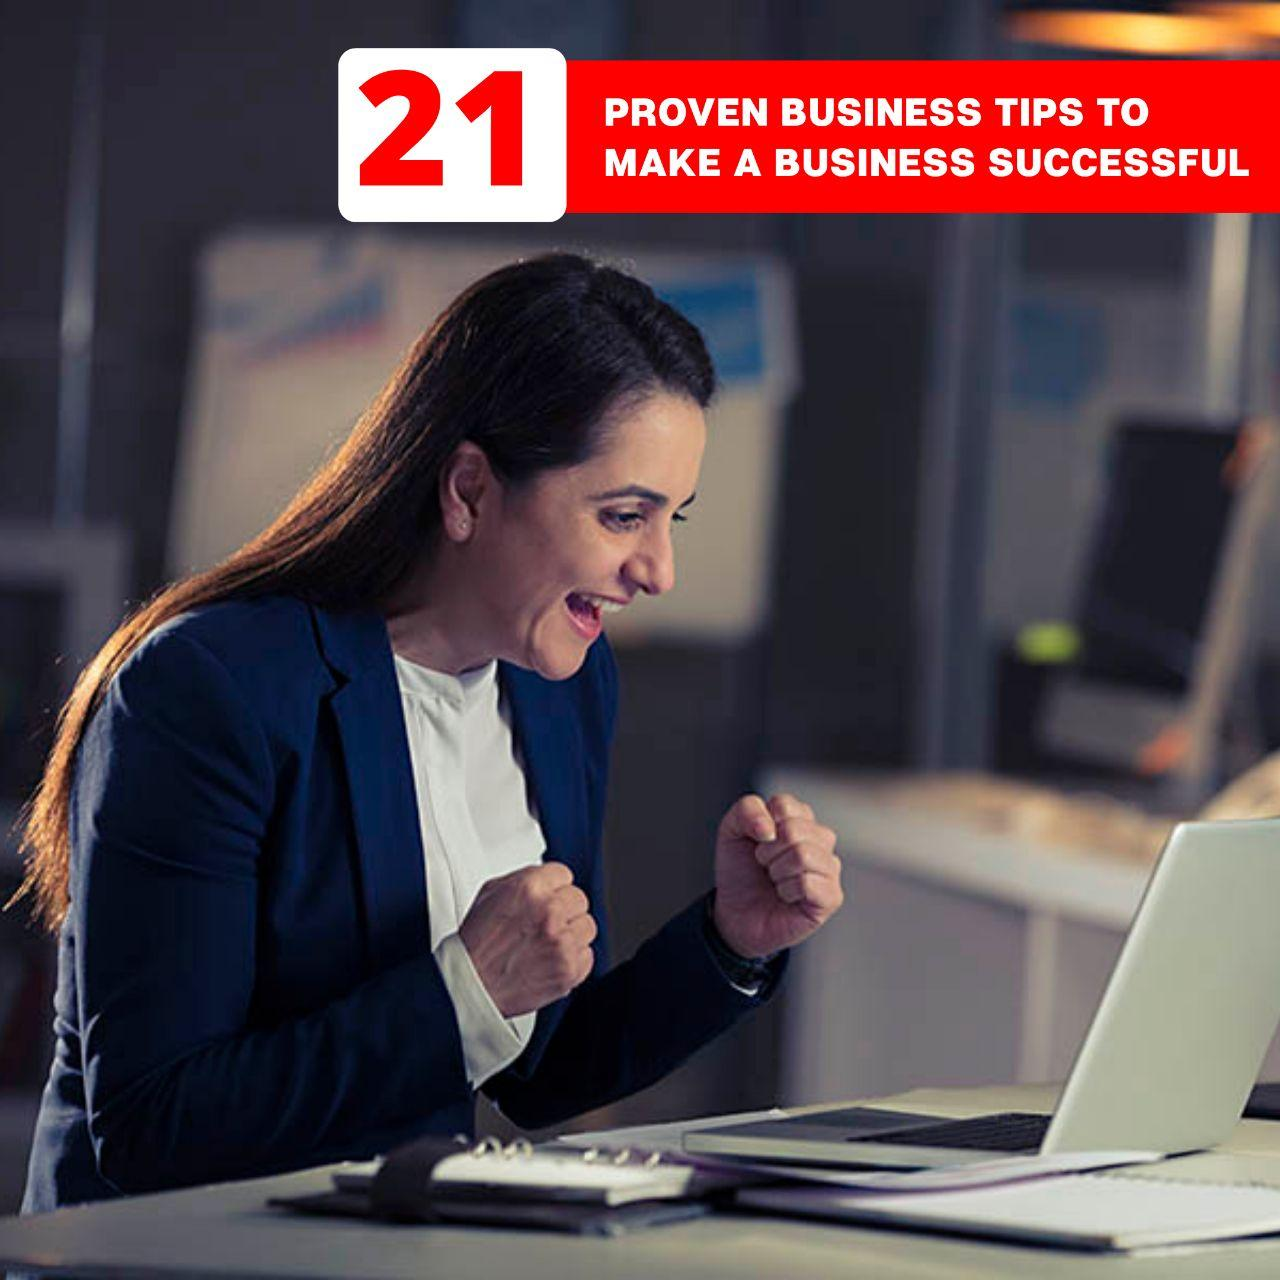 21 Proven Business Tips to Make a Business Successful